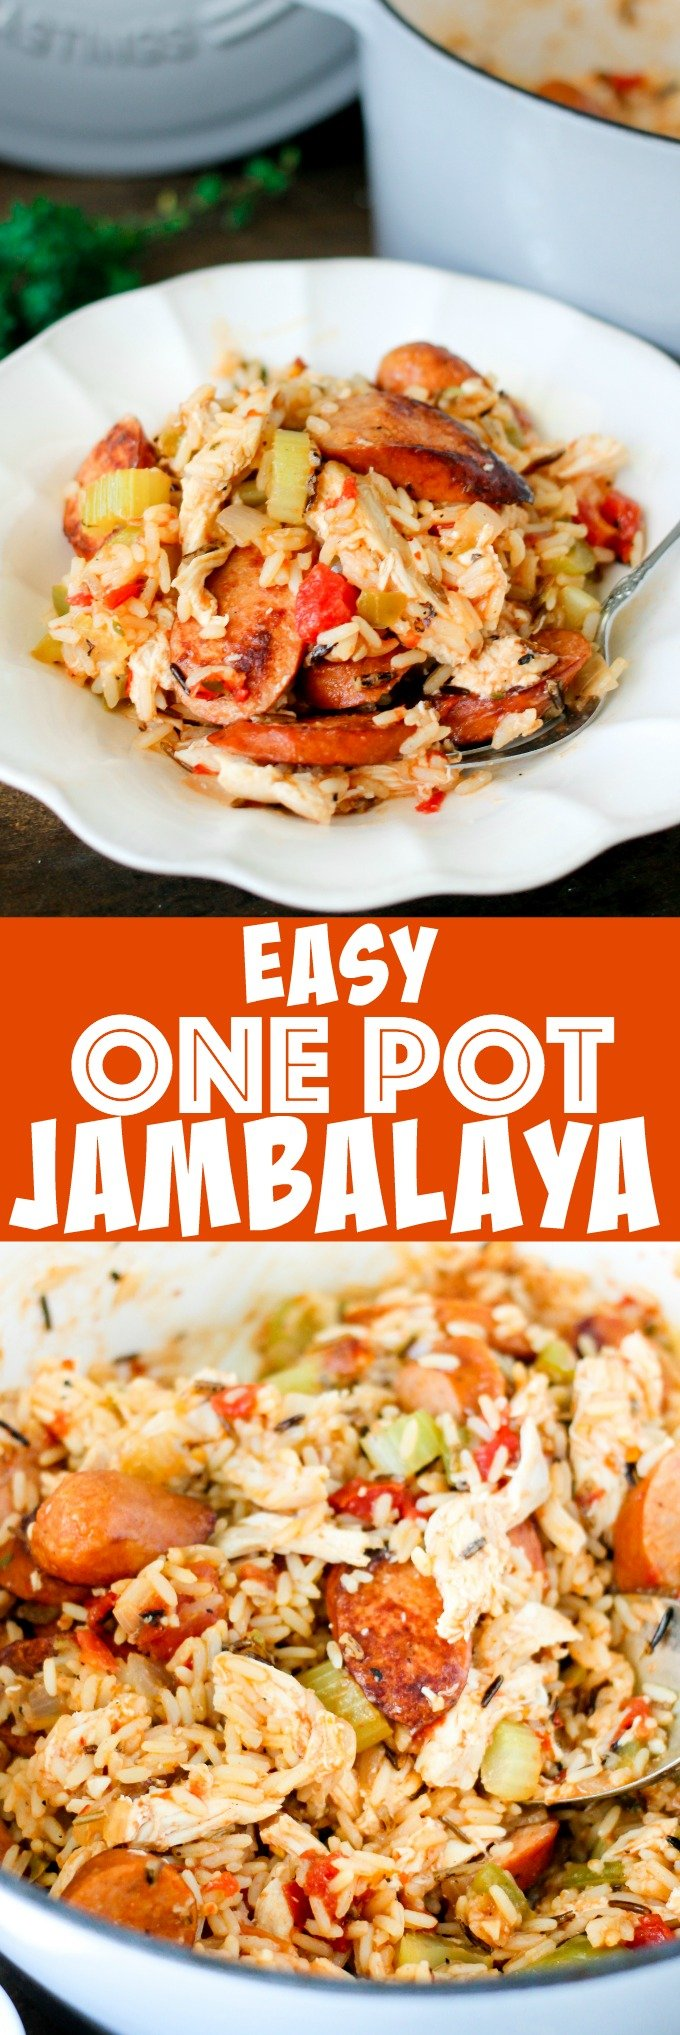 One Pot Jambalaya is full of chicken, andouille sausage, bell peppers, and spices! Only a few minutes of prep time to whip up this New Orleans favorite!